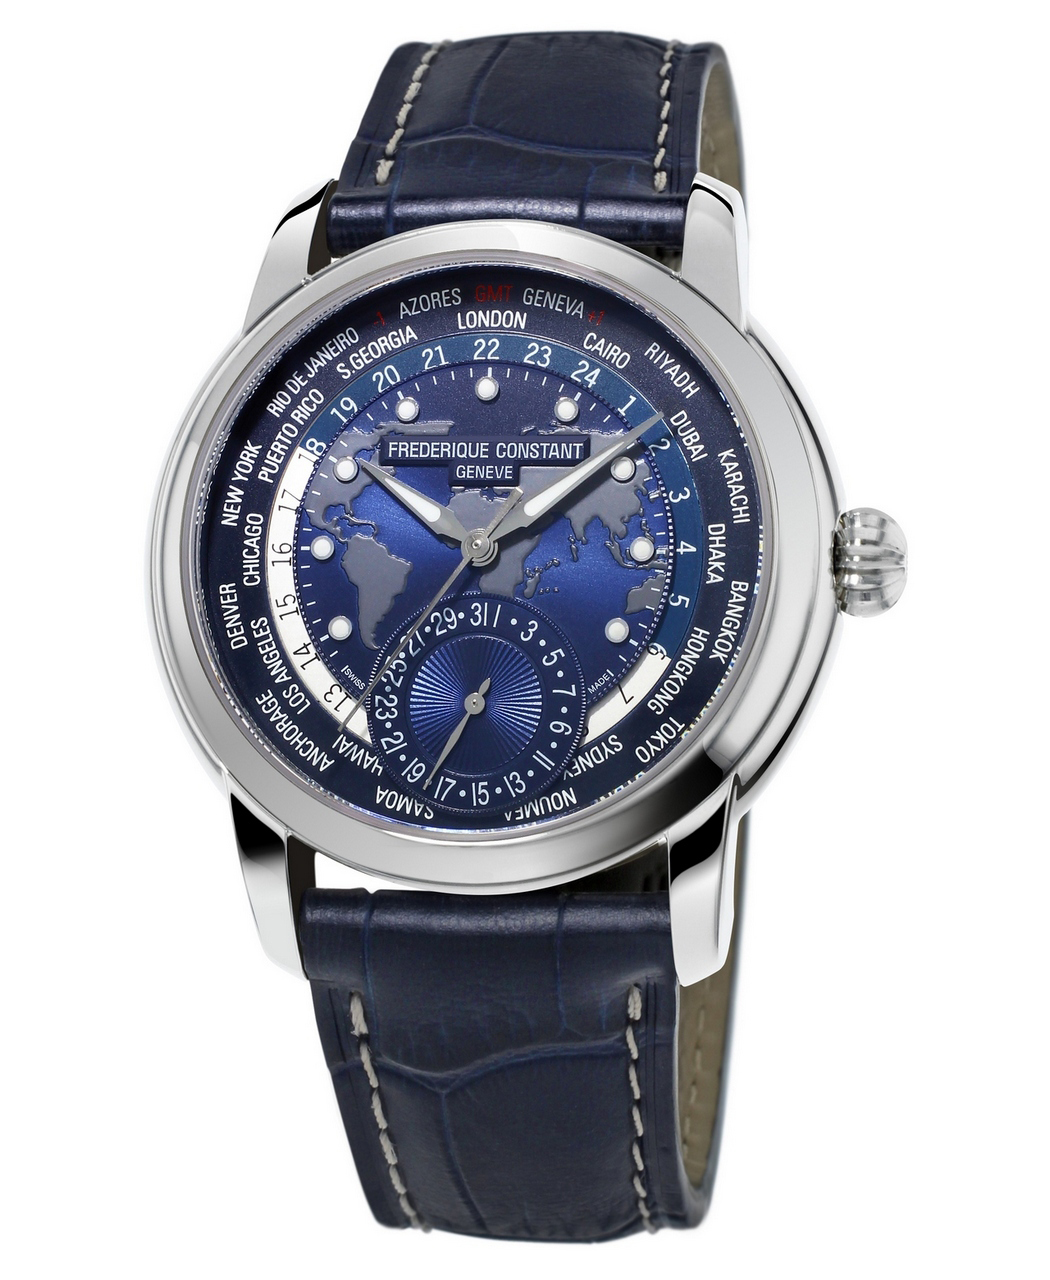 Frederique Worldtimer Classics Manufacture - Worldtimer Collection